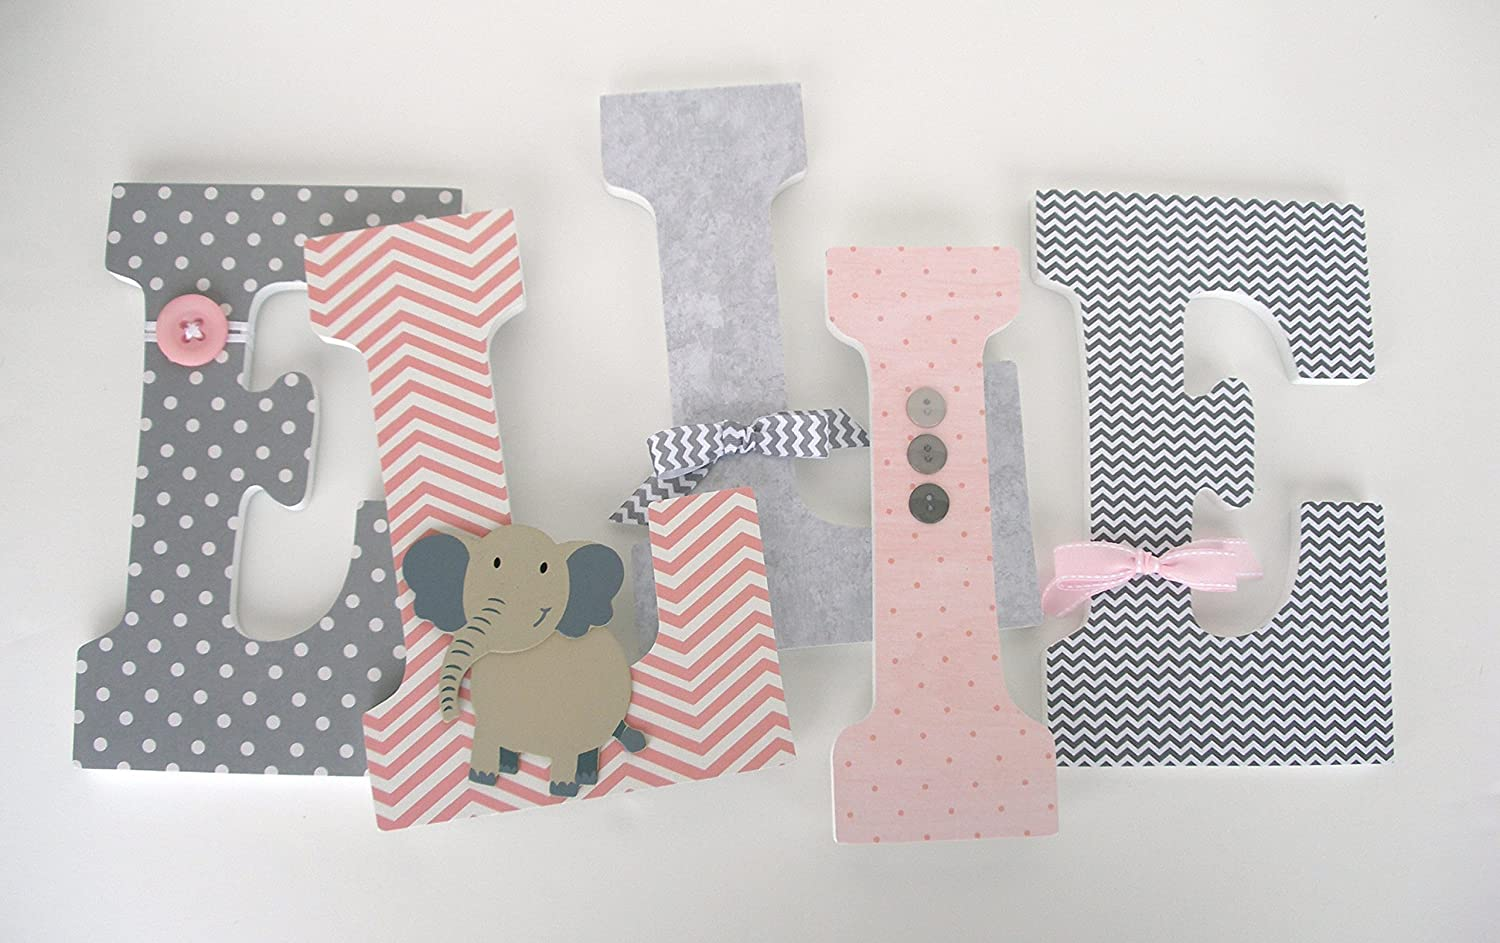 Amazon pink and gray elephant custom wooden letters baby amazon pink and gray elephant custom wooden letters baby girl nursery decor large 9 inch bedroom decorations wood name art for walls handmade amipublicfo Image collections